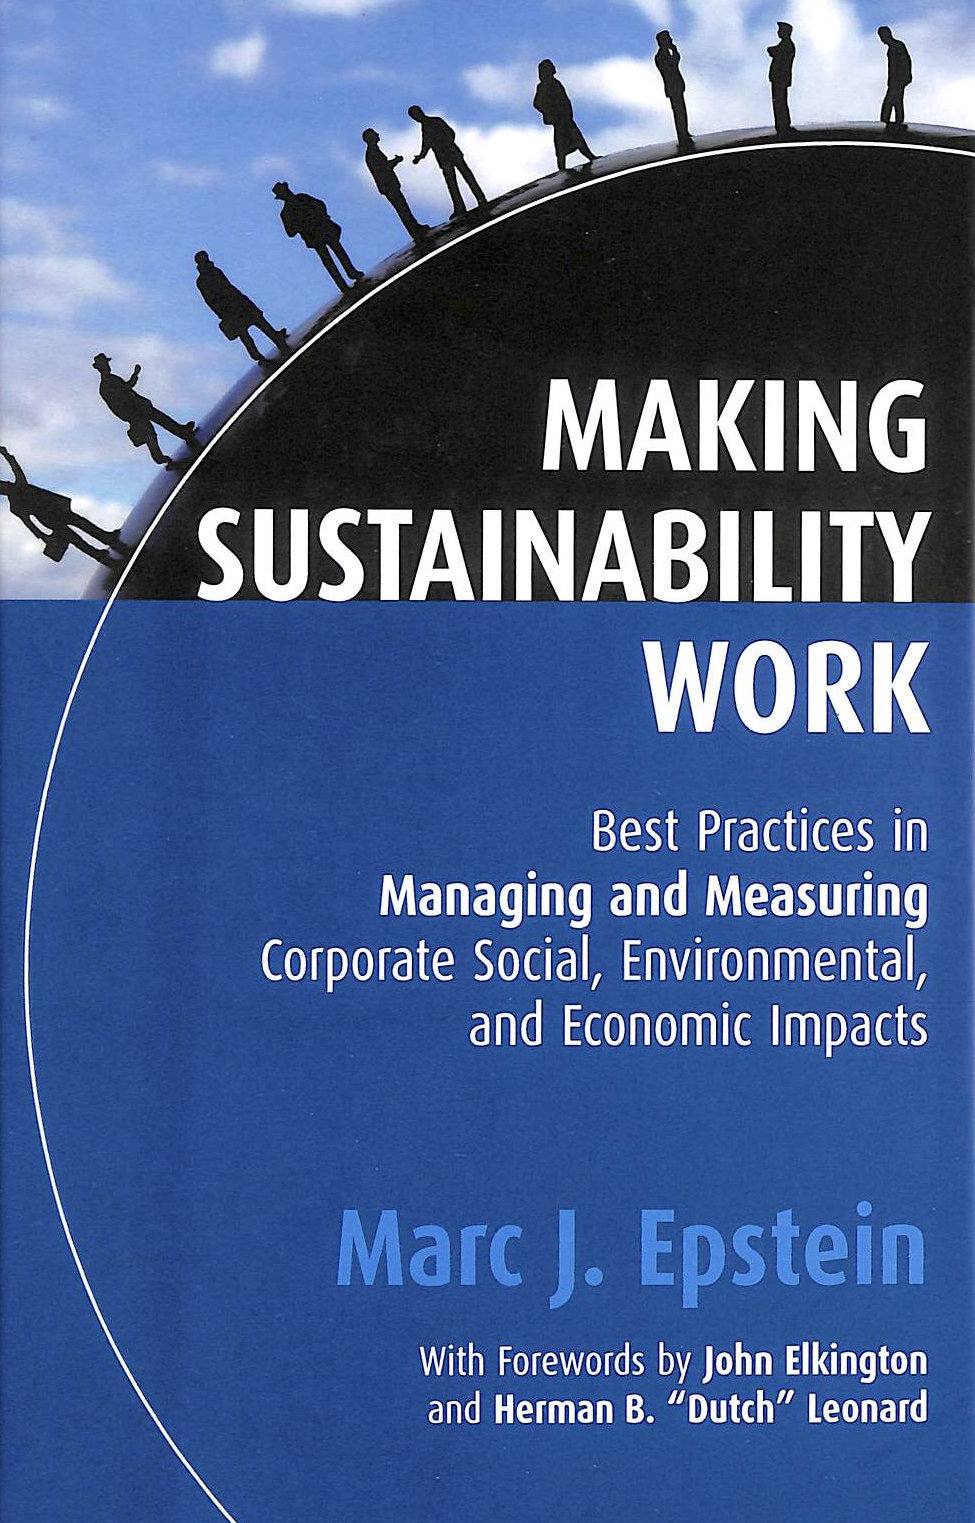 Image for Making Sustainability Work: Best Practices In Managing And Measuring Corporate Social, Environmental And Economic Impacts